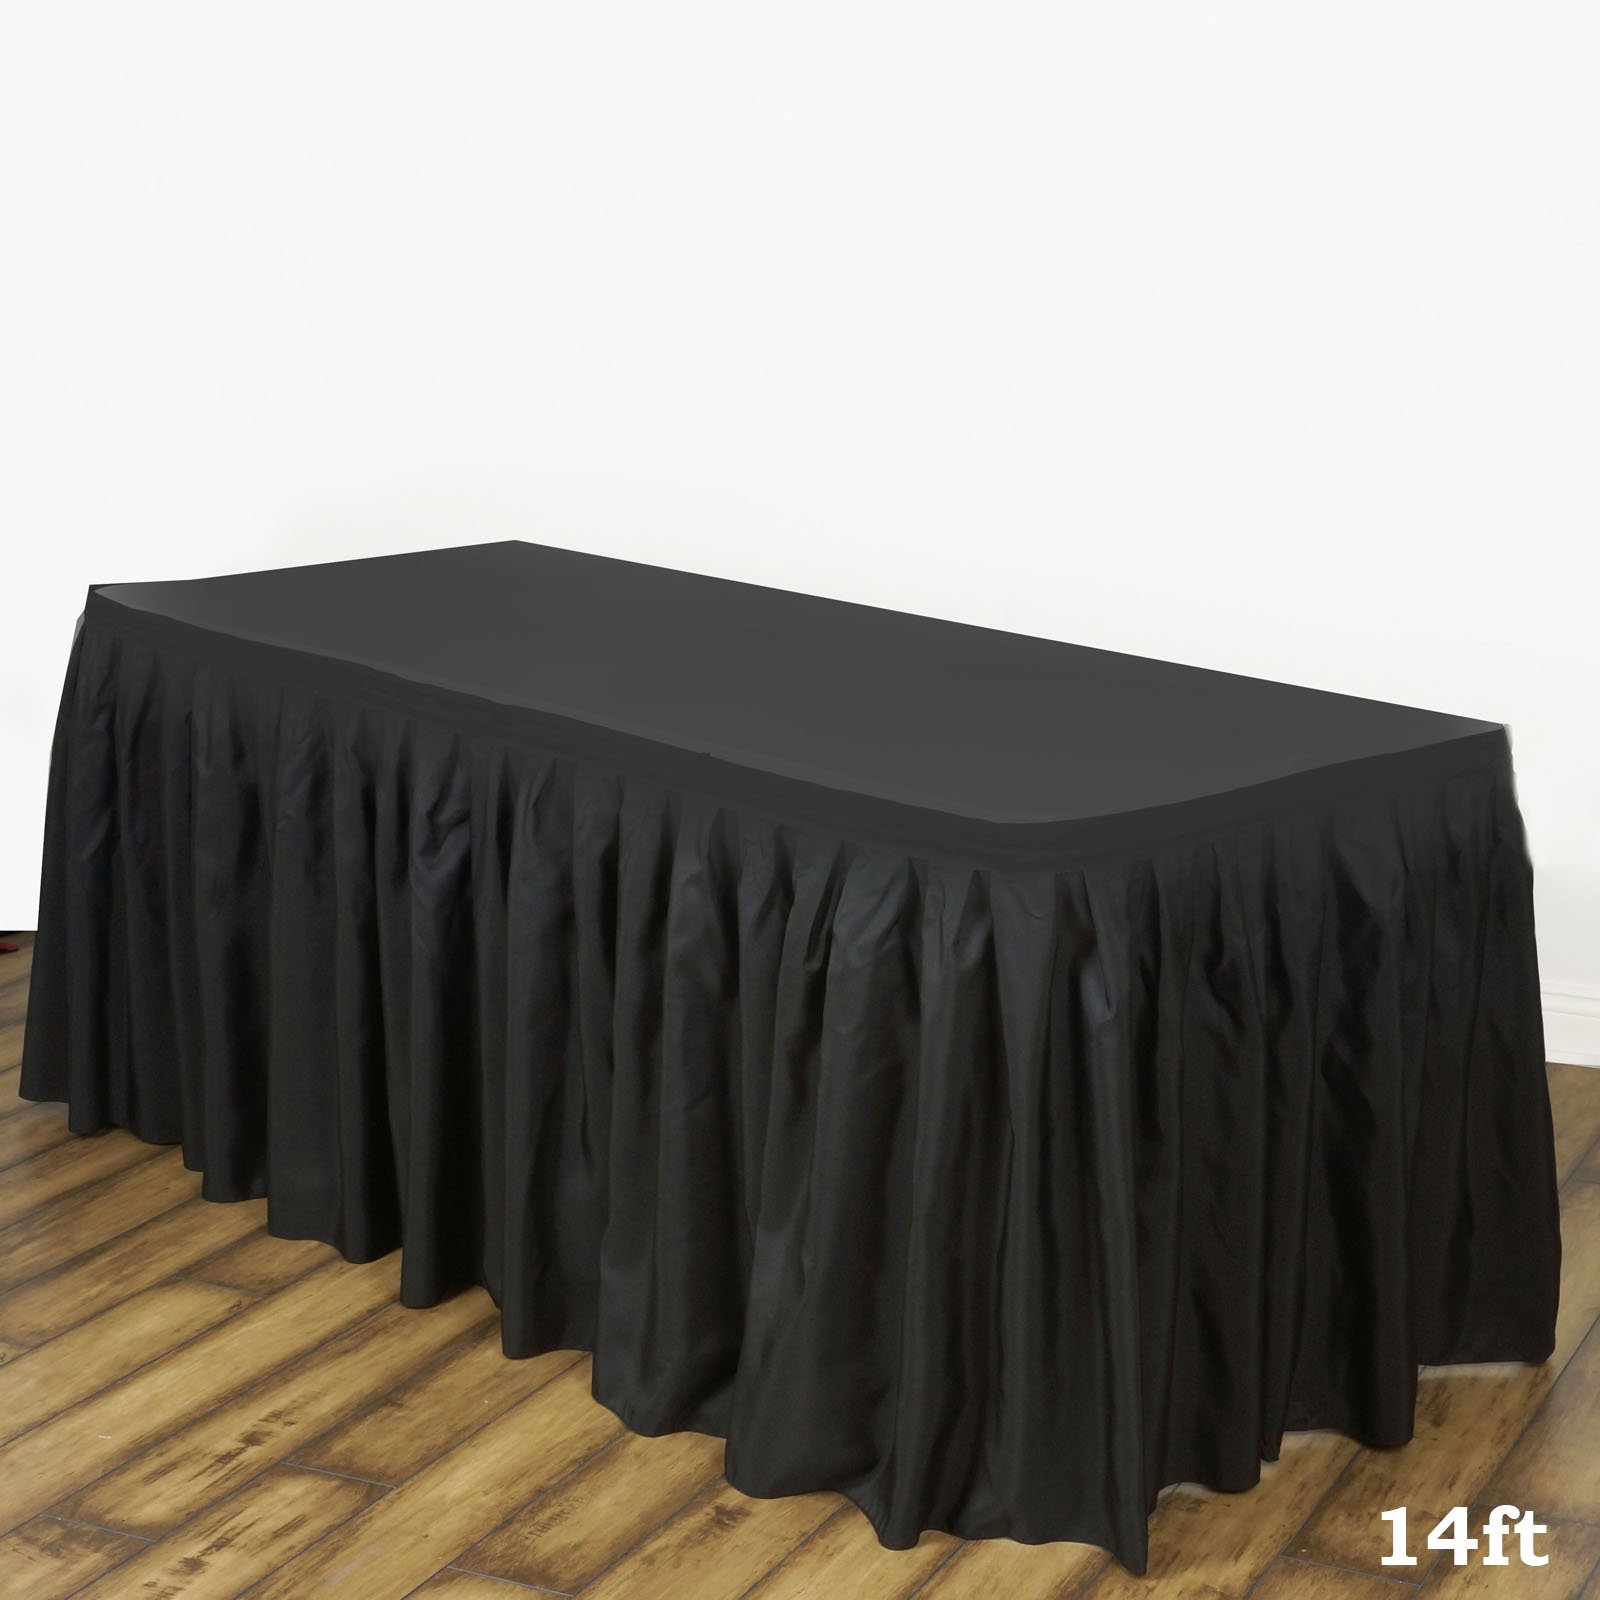 LinenTablecloth 14 ft. Accordion Pleat Polyester Table Skirt Black by LinenTablecloth (Image #1)